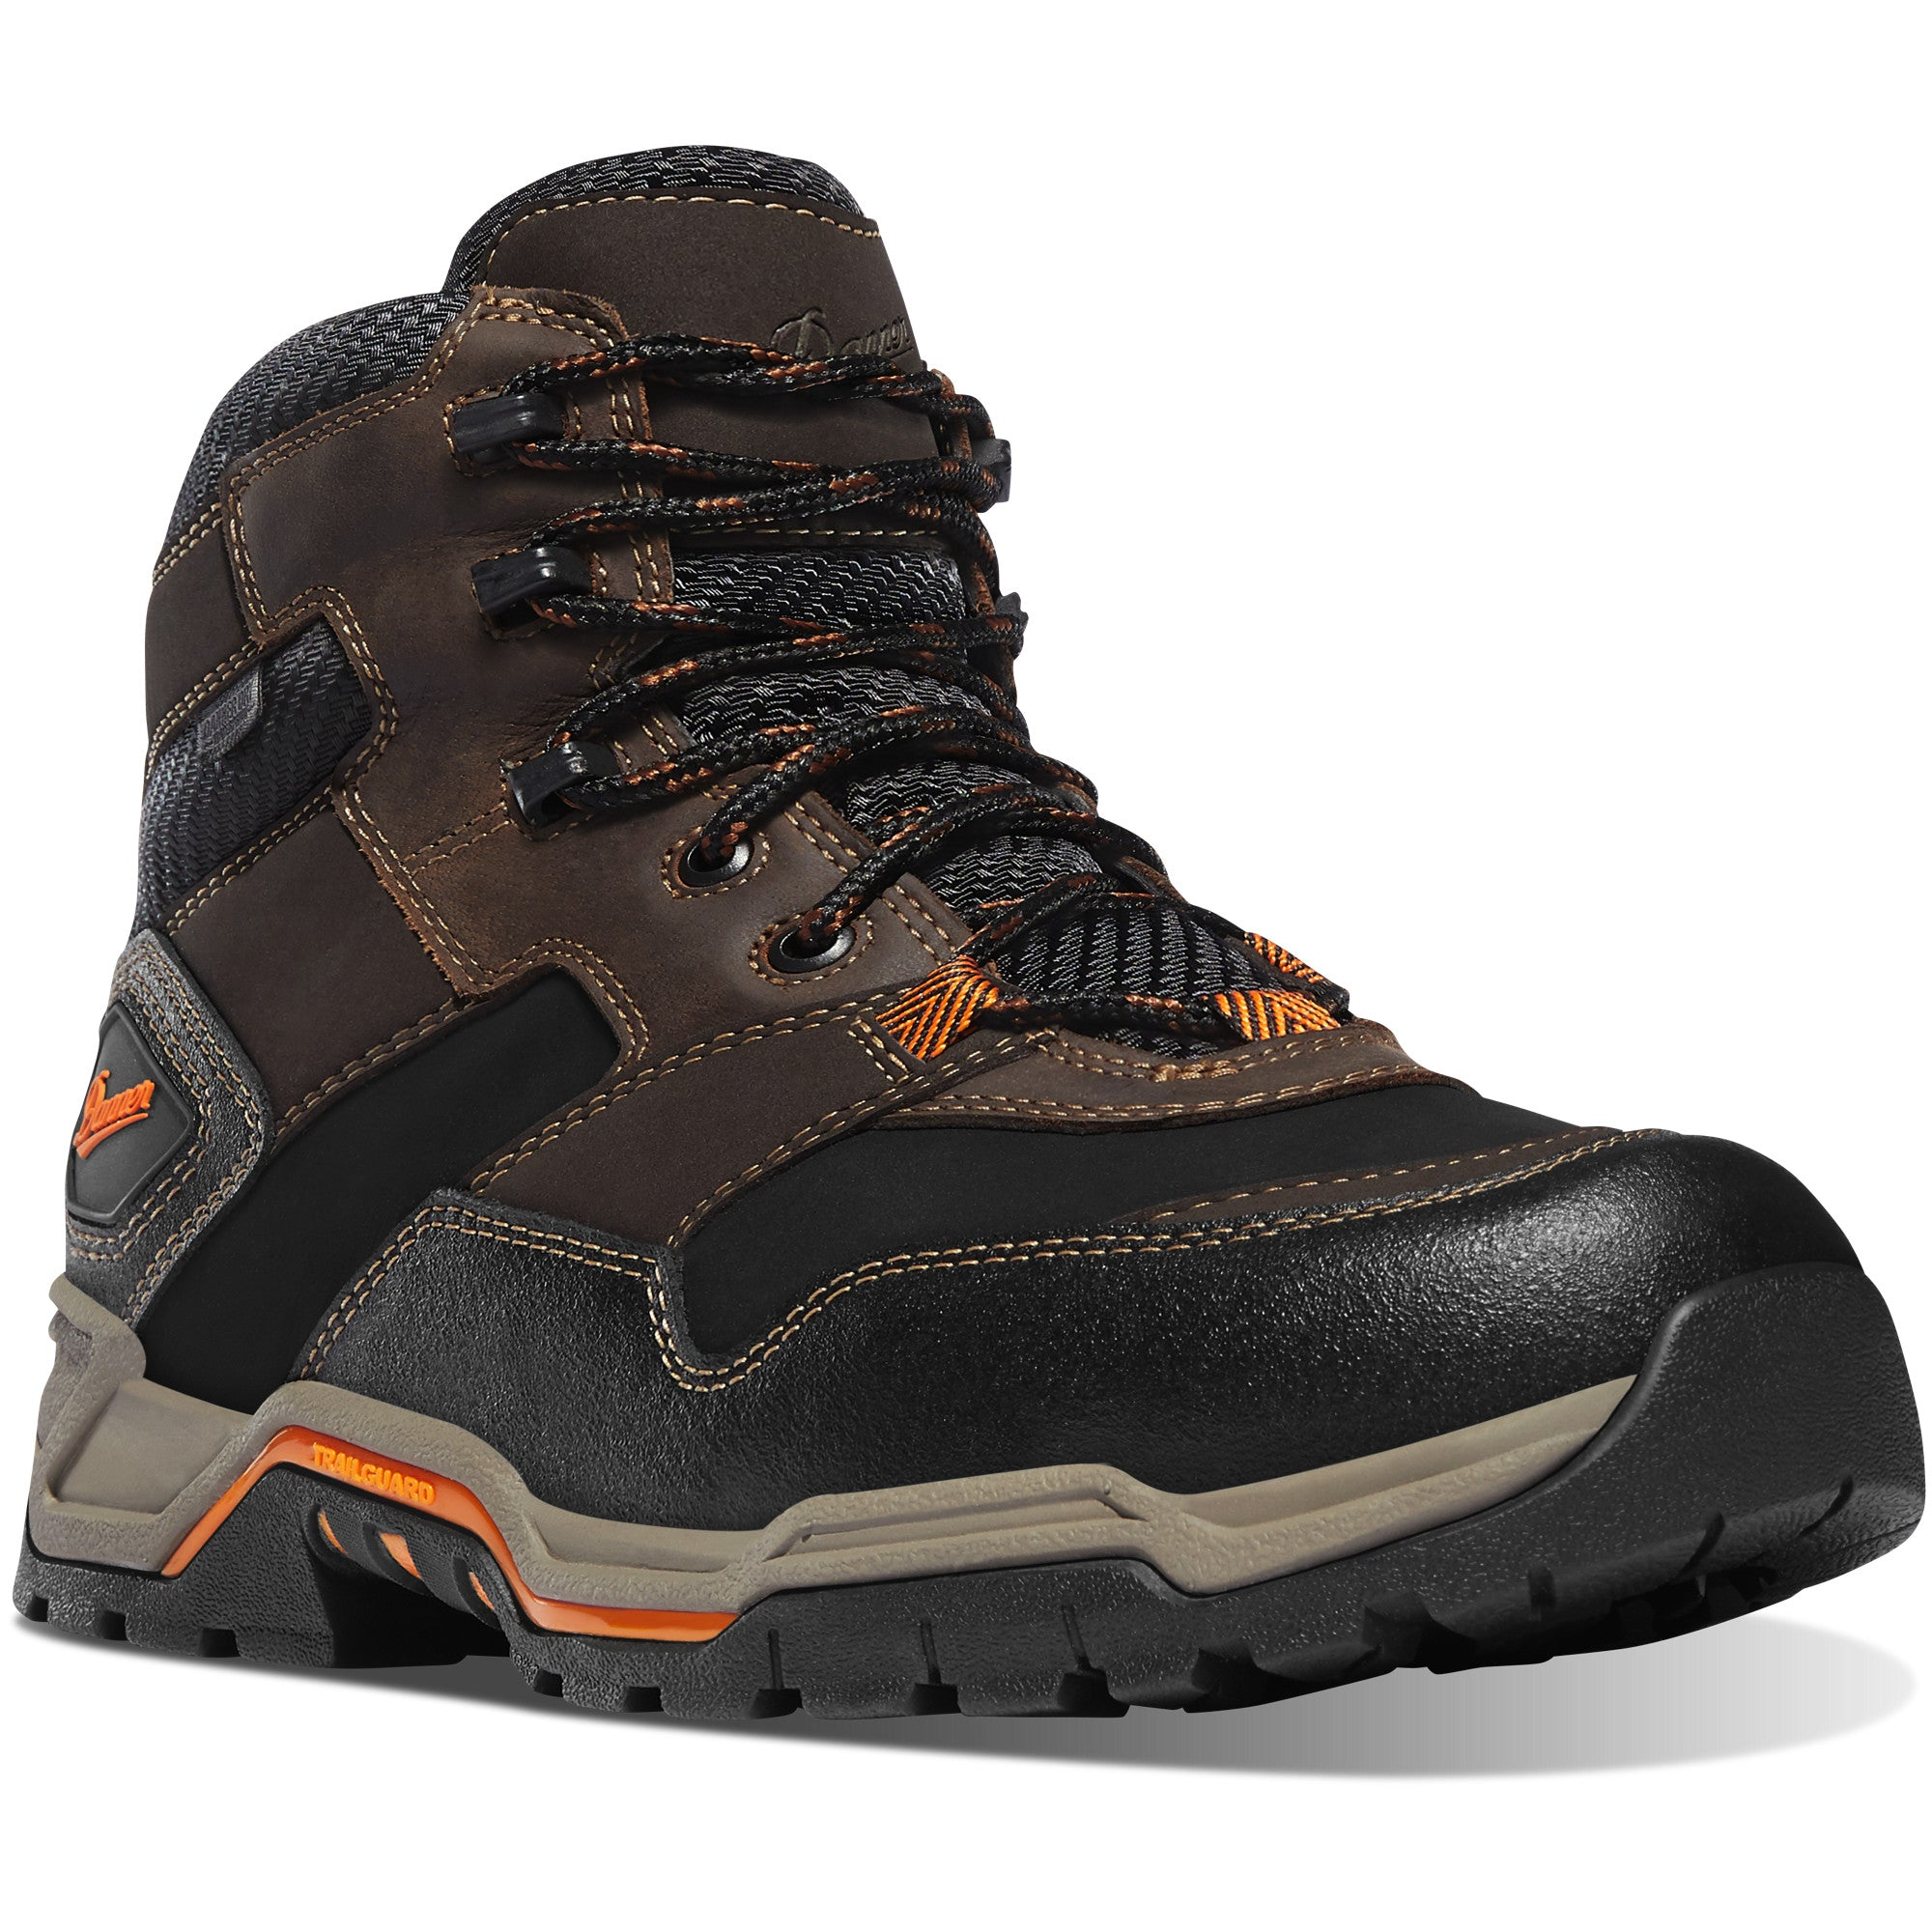 "Danner Men's Field Ranger 6"" Waterproof Work Boot in Brown from the side"